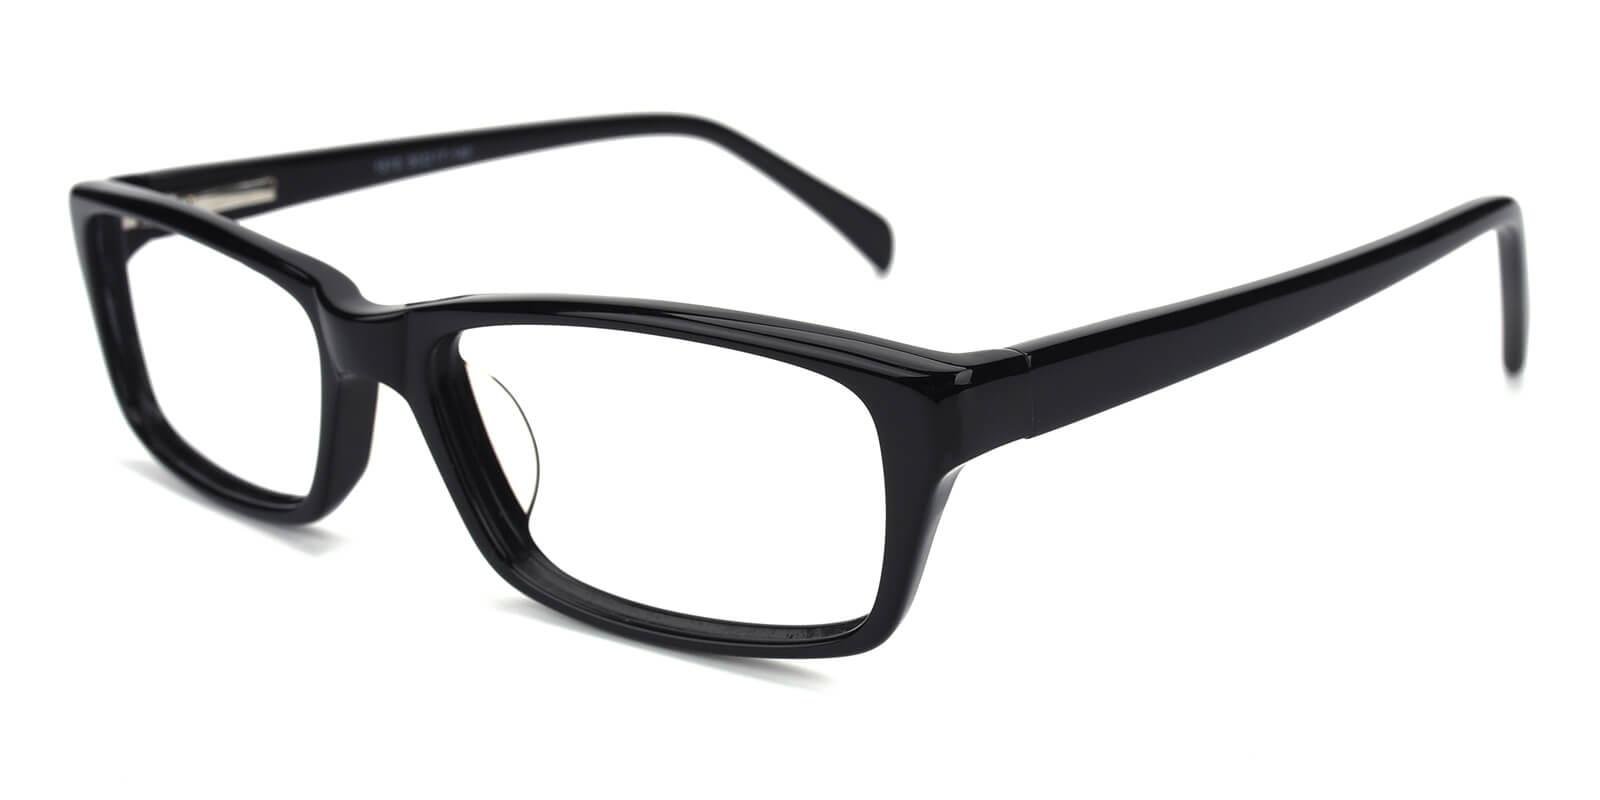 Dummer-Black-Rectangle-Acetate-Eyeglasses-additional1